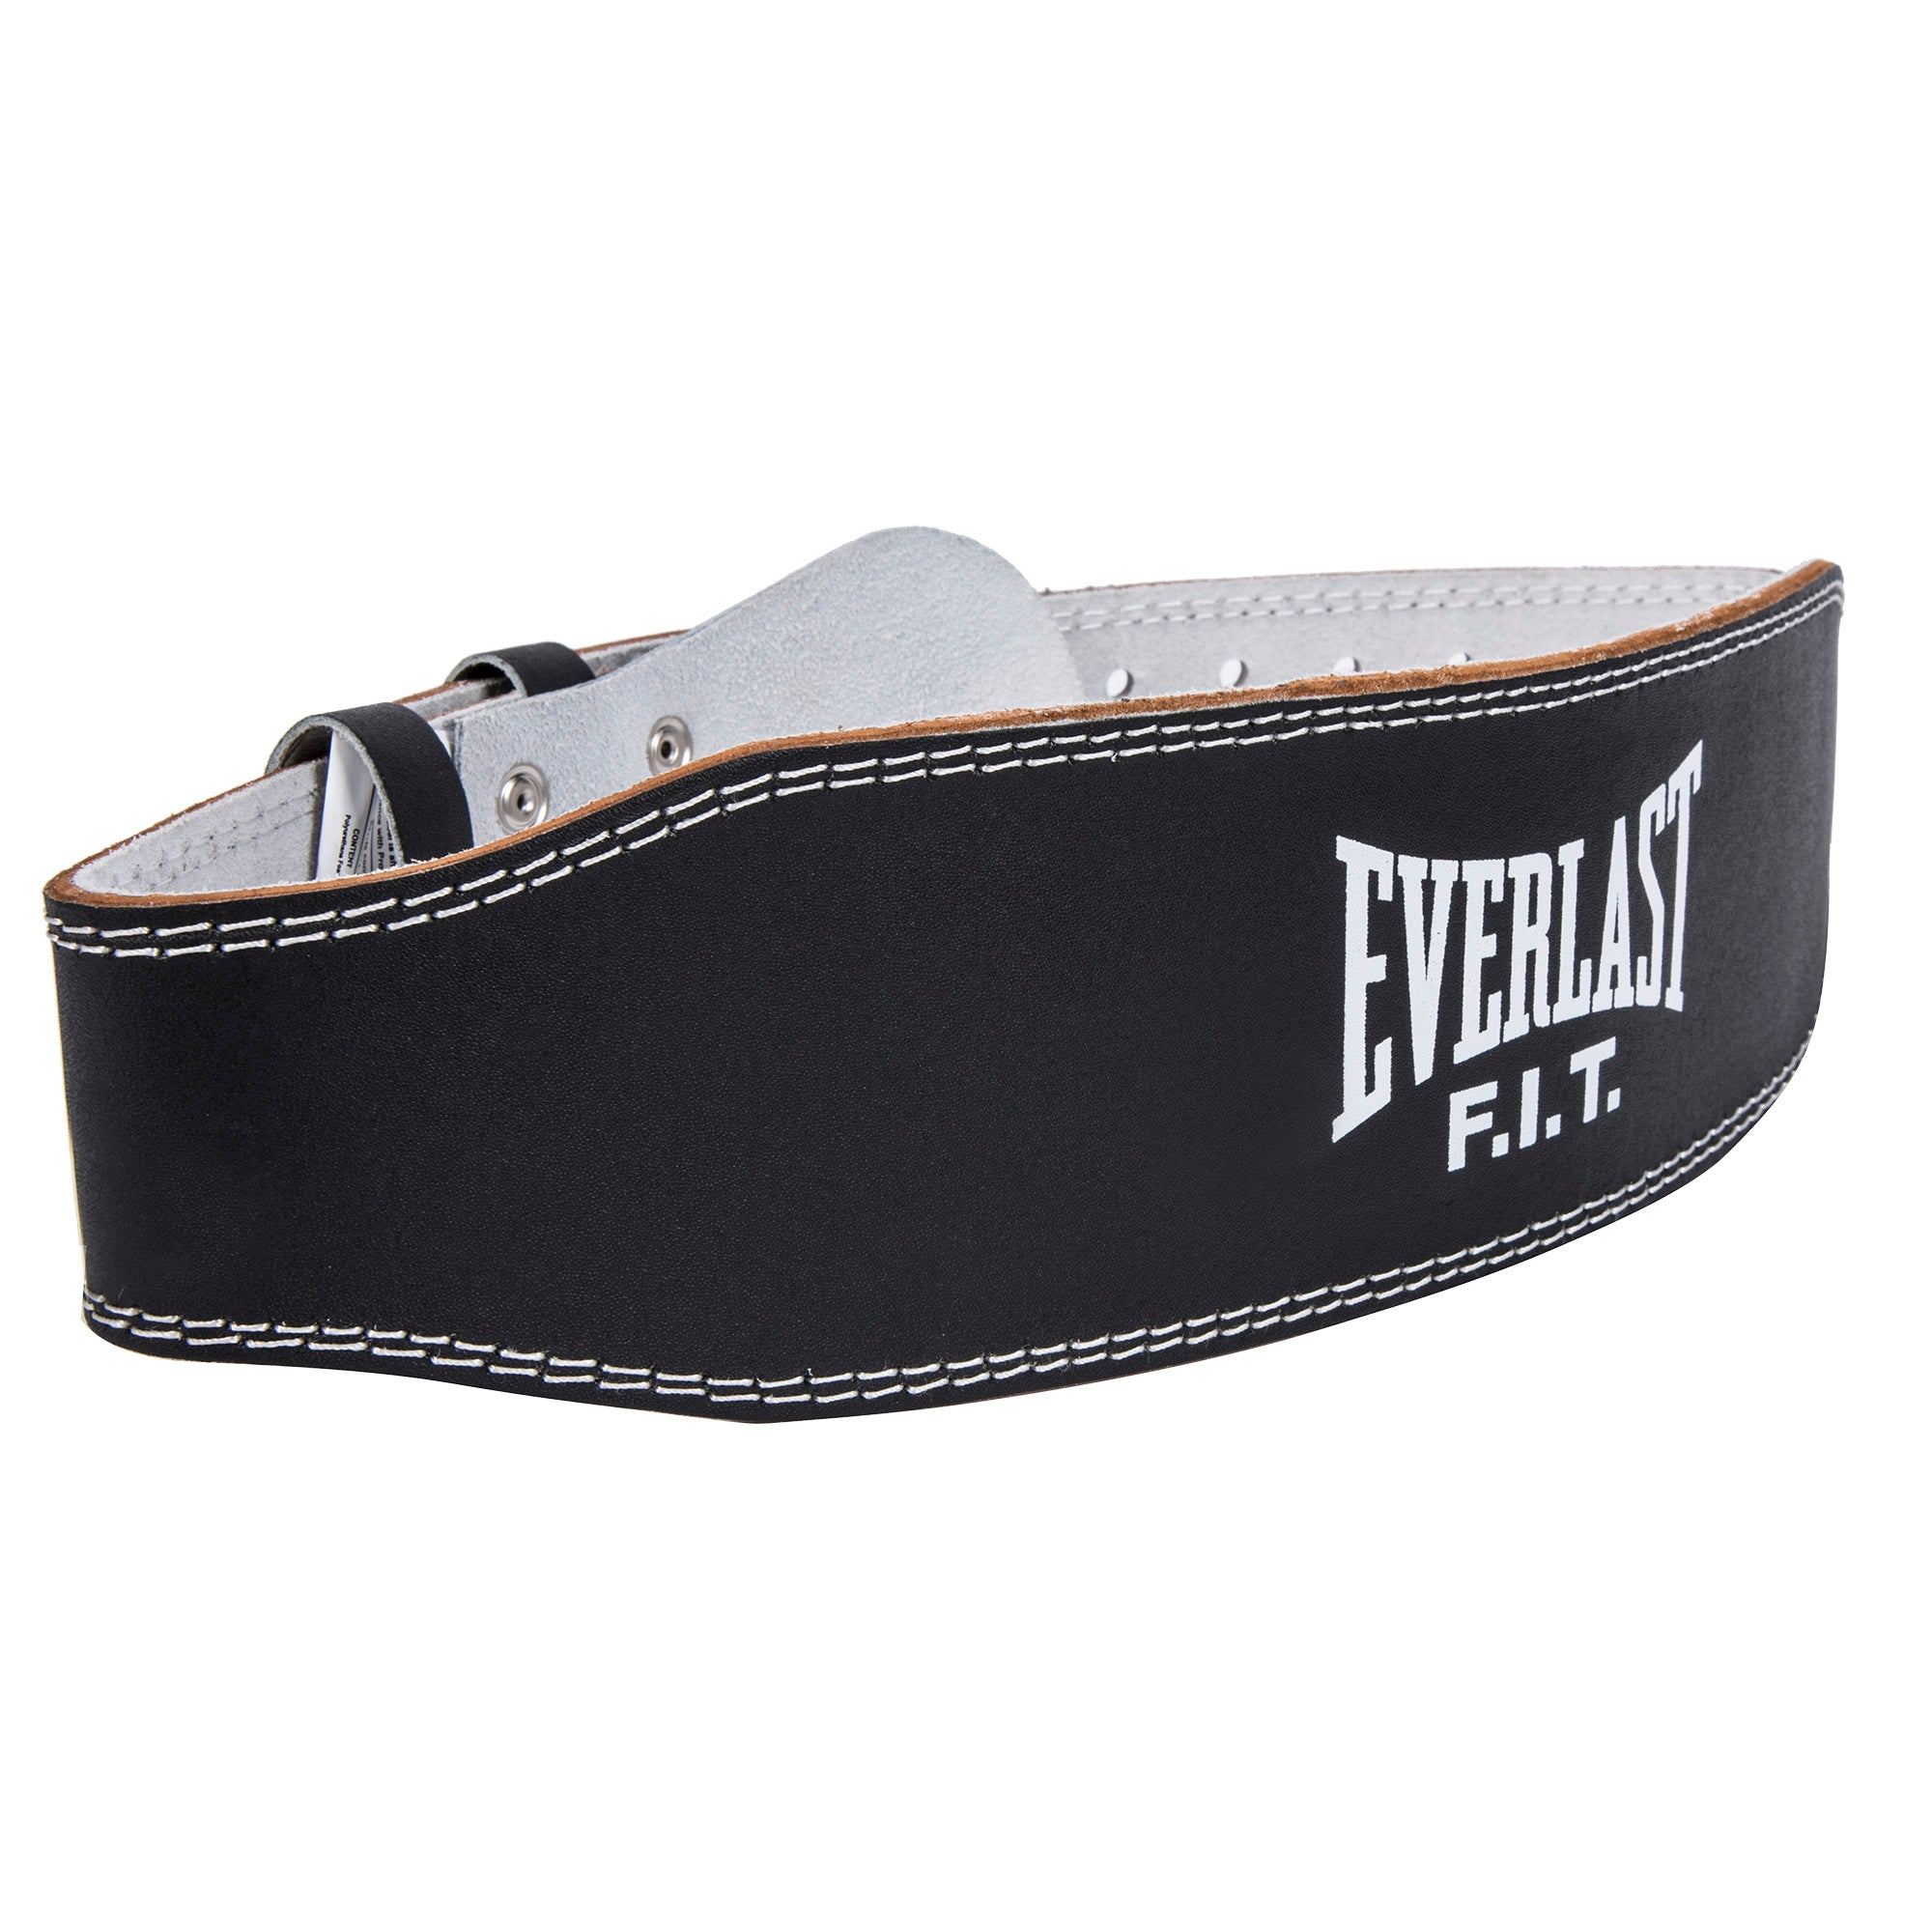 Everlast Leather Weightlifting Belt by Everlast Canada